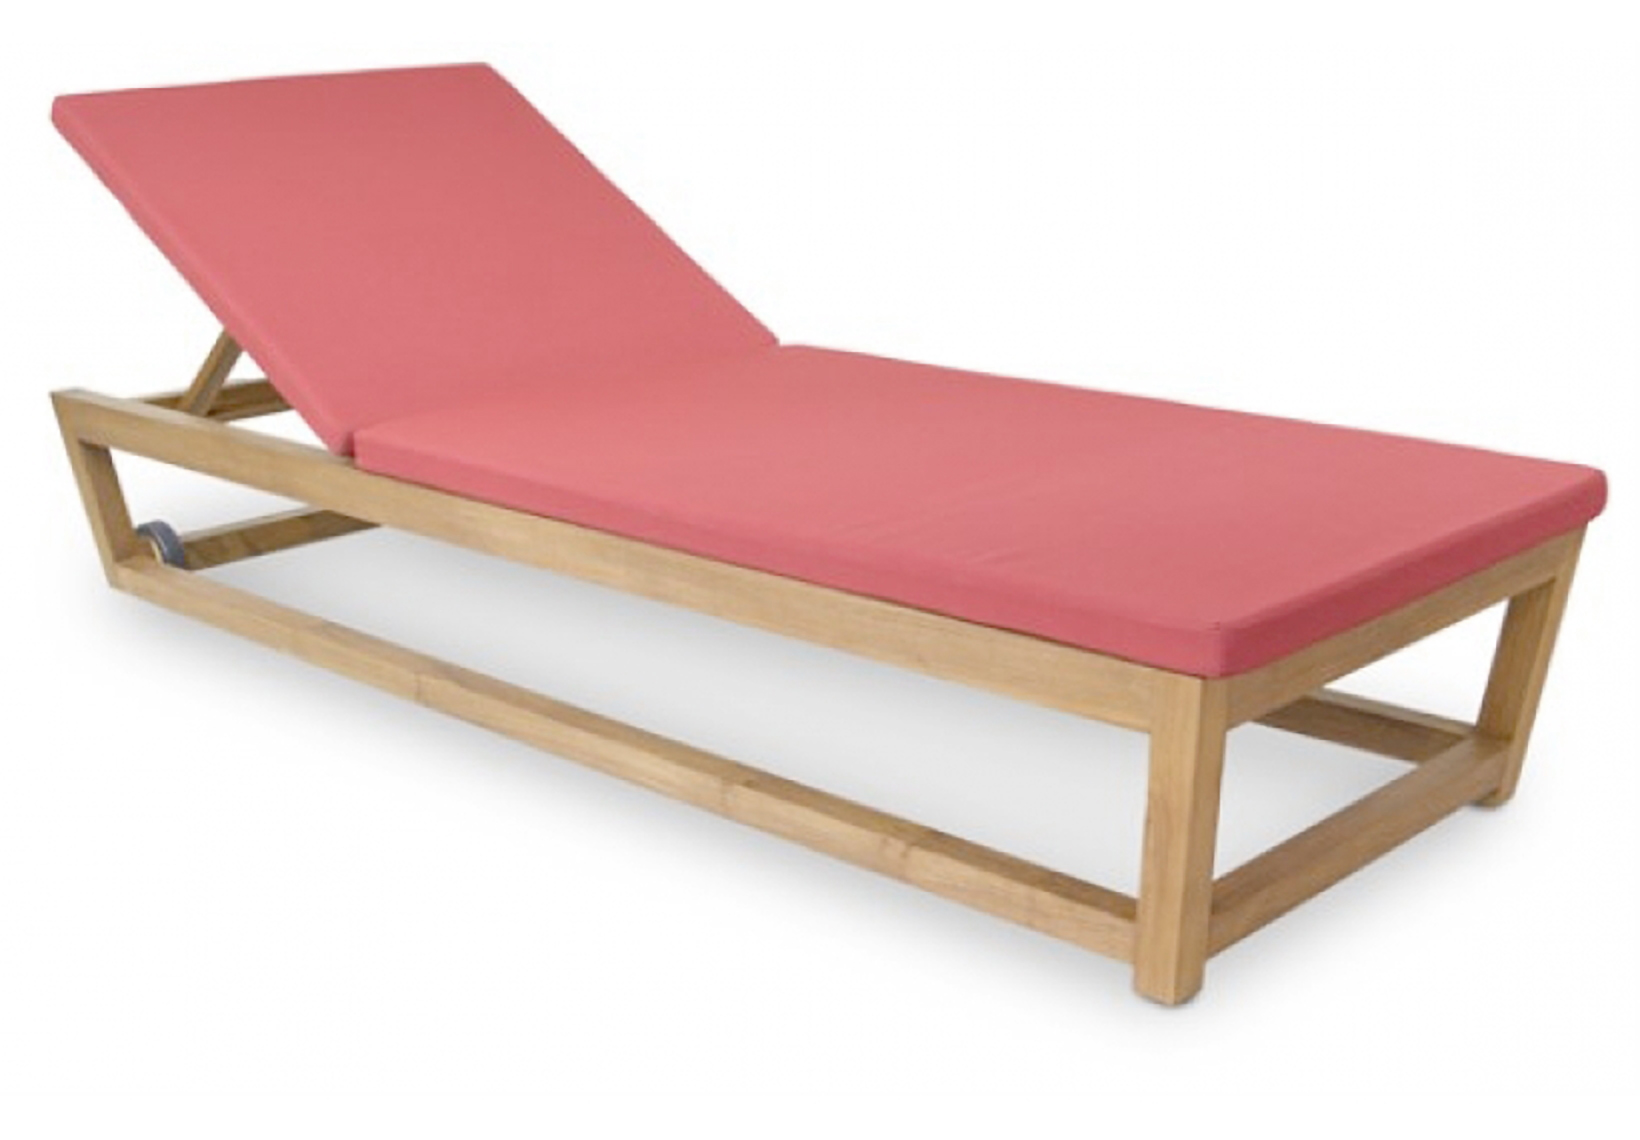 Korogated Lounger